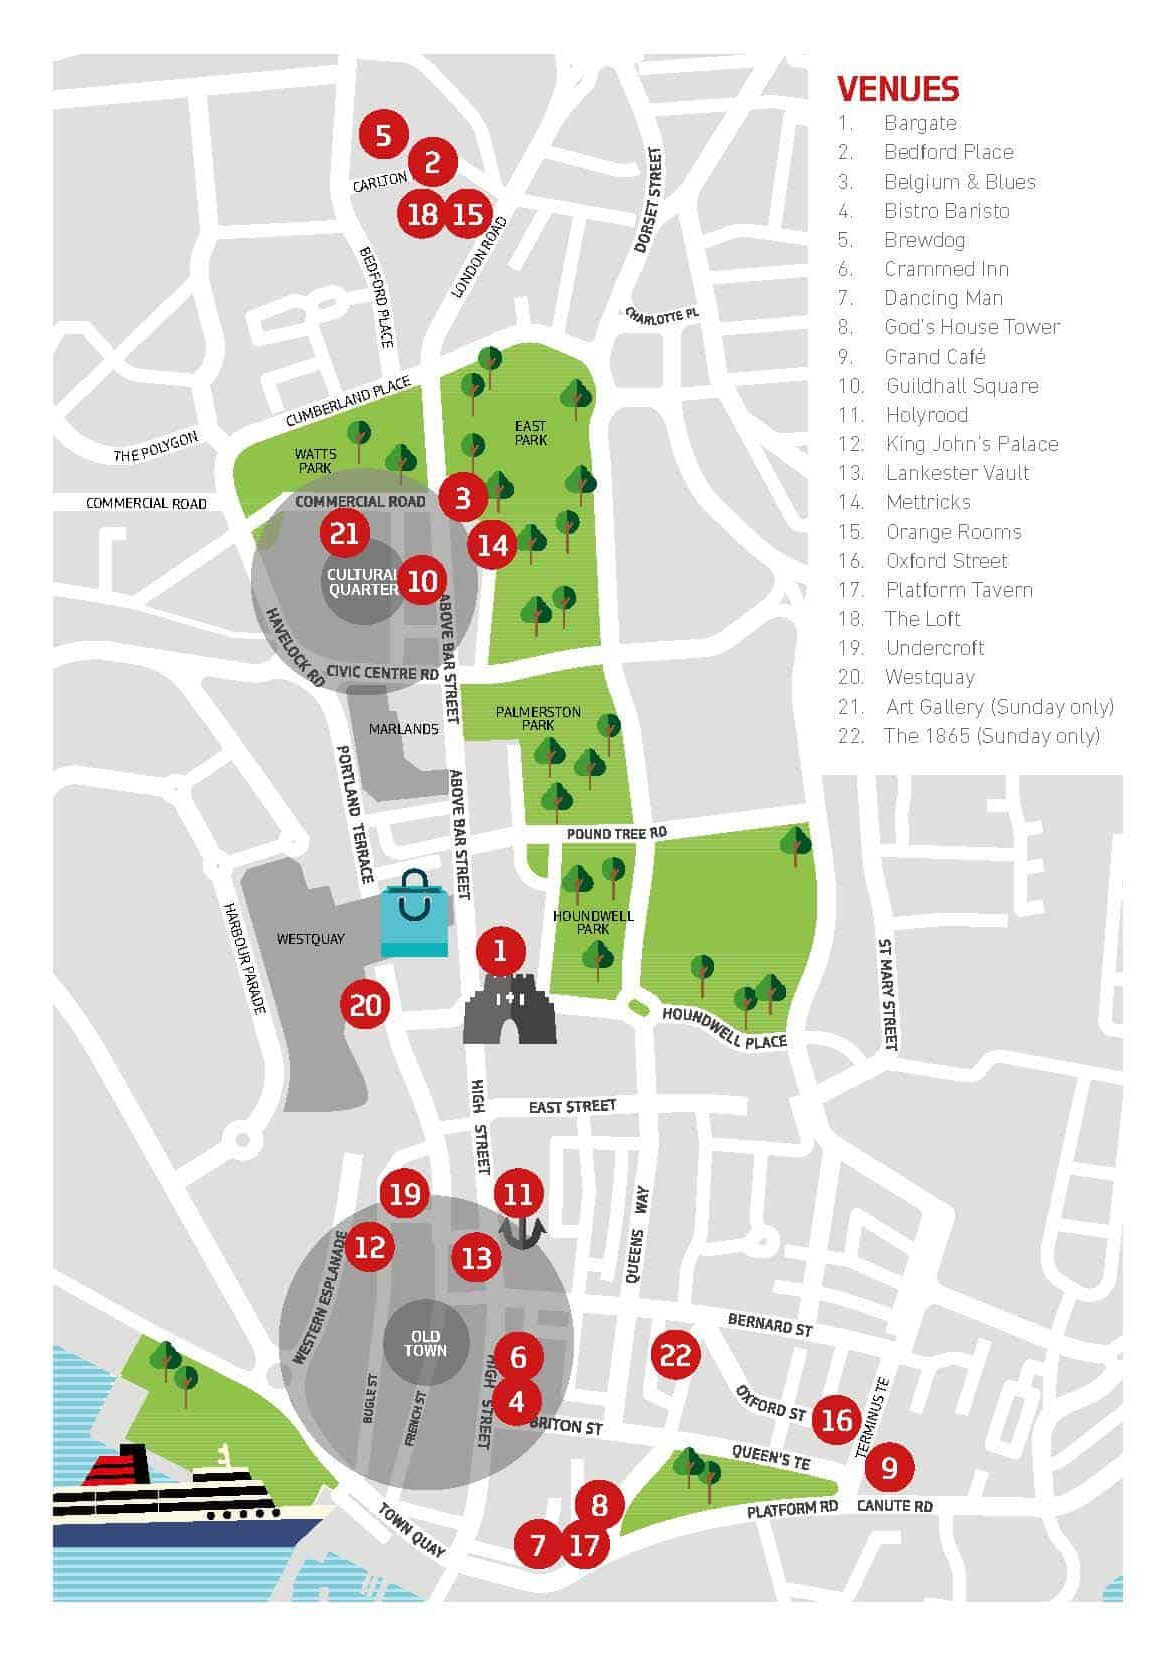 click to see our venue map